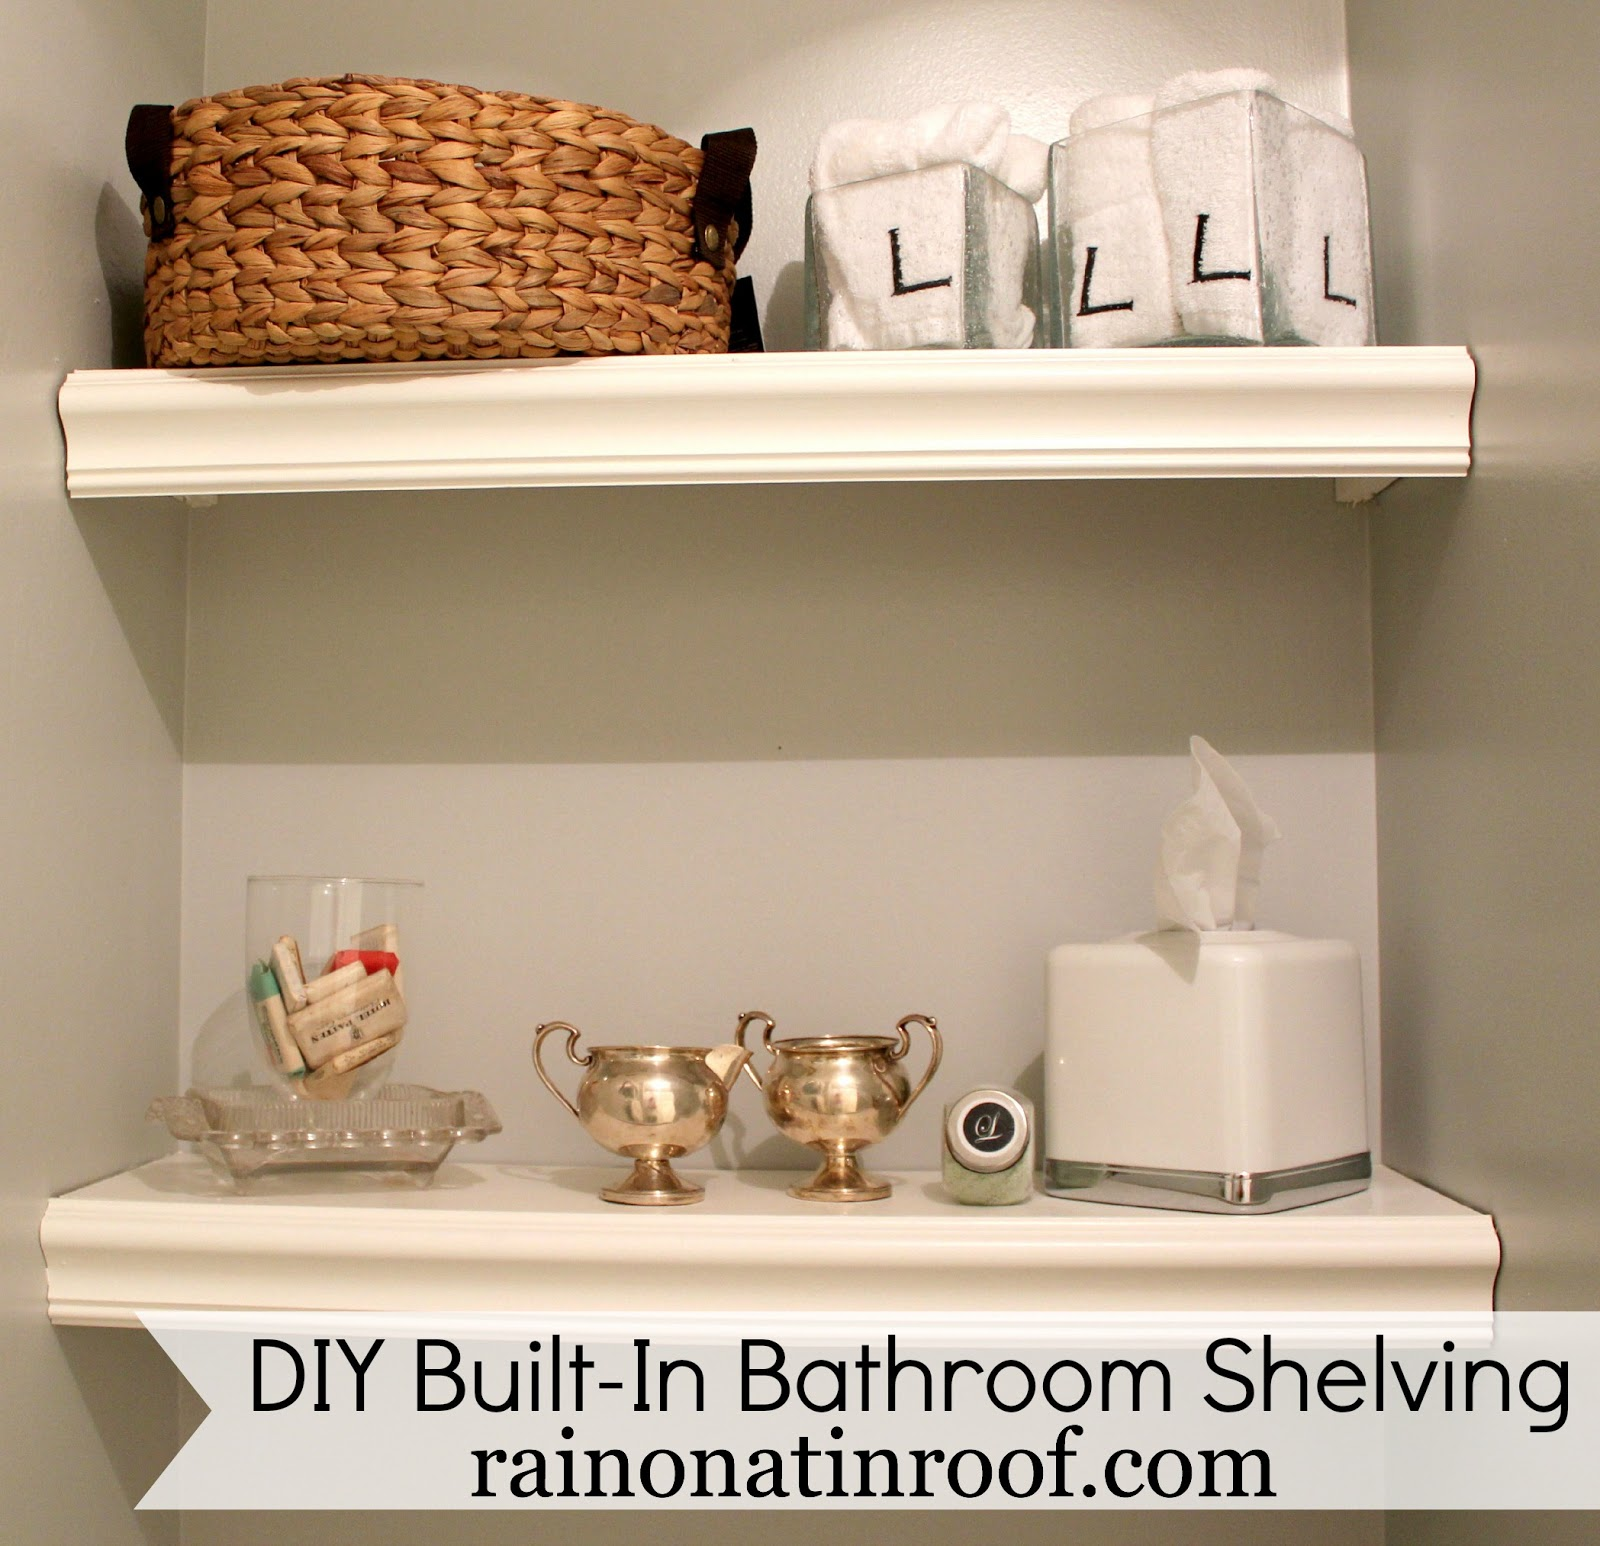 Diy Shelves For Small Bathrooms: Rain On A Tin Roof: DIY Built-In Bathroom Shelving